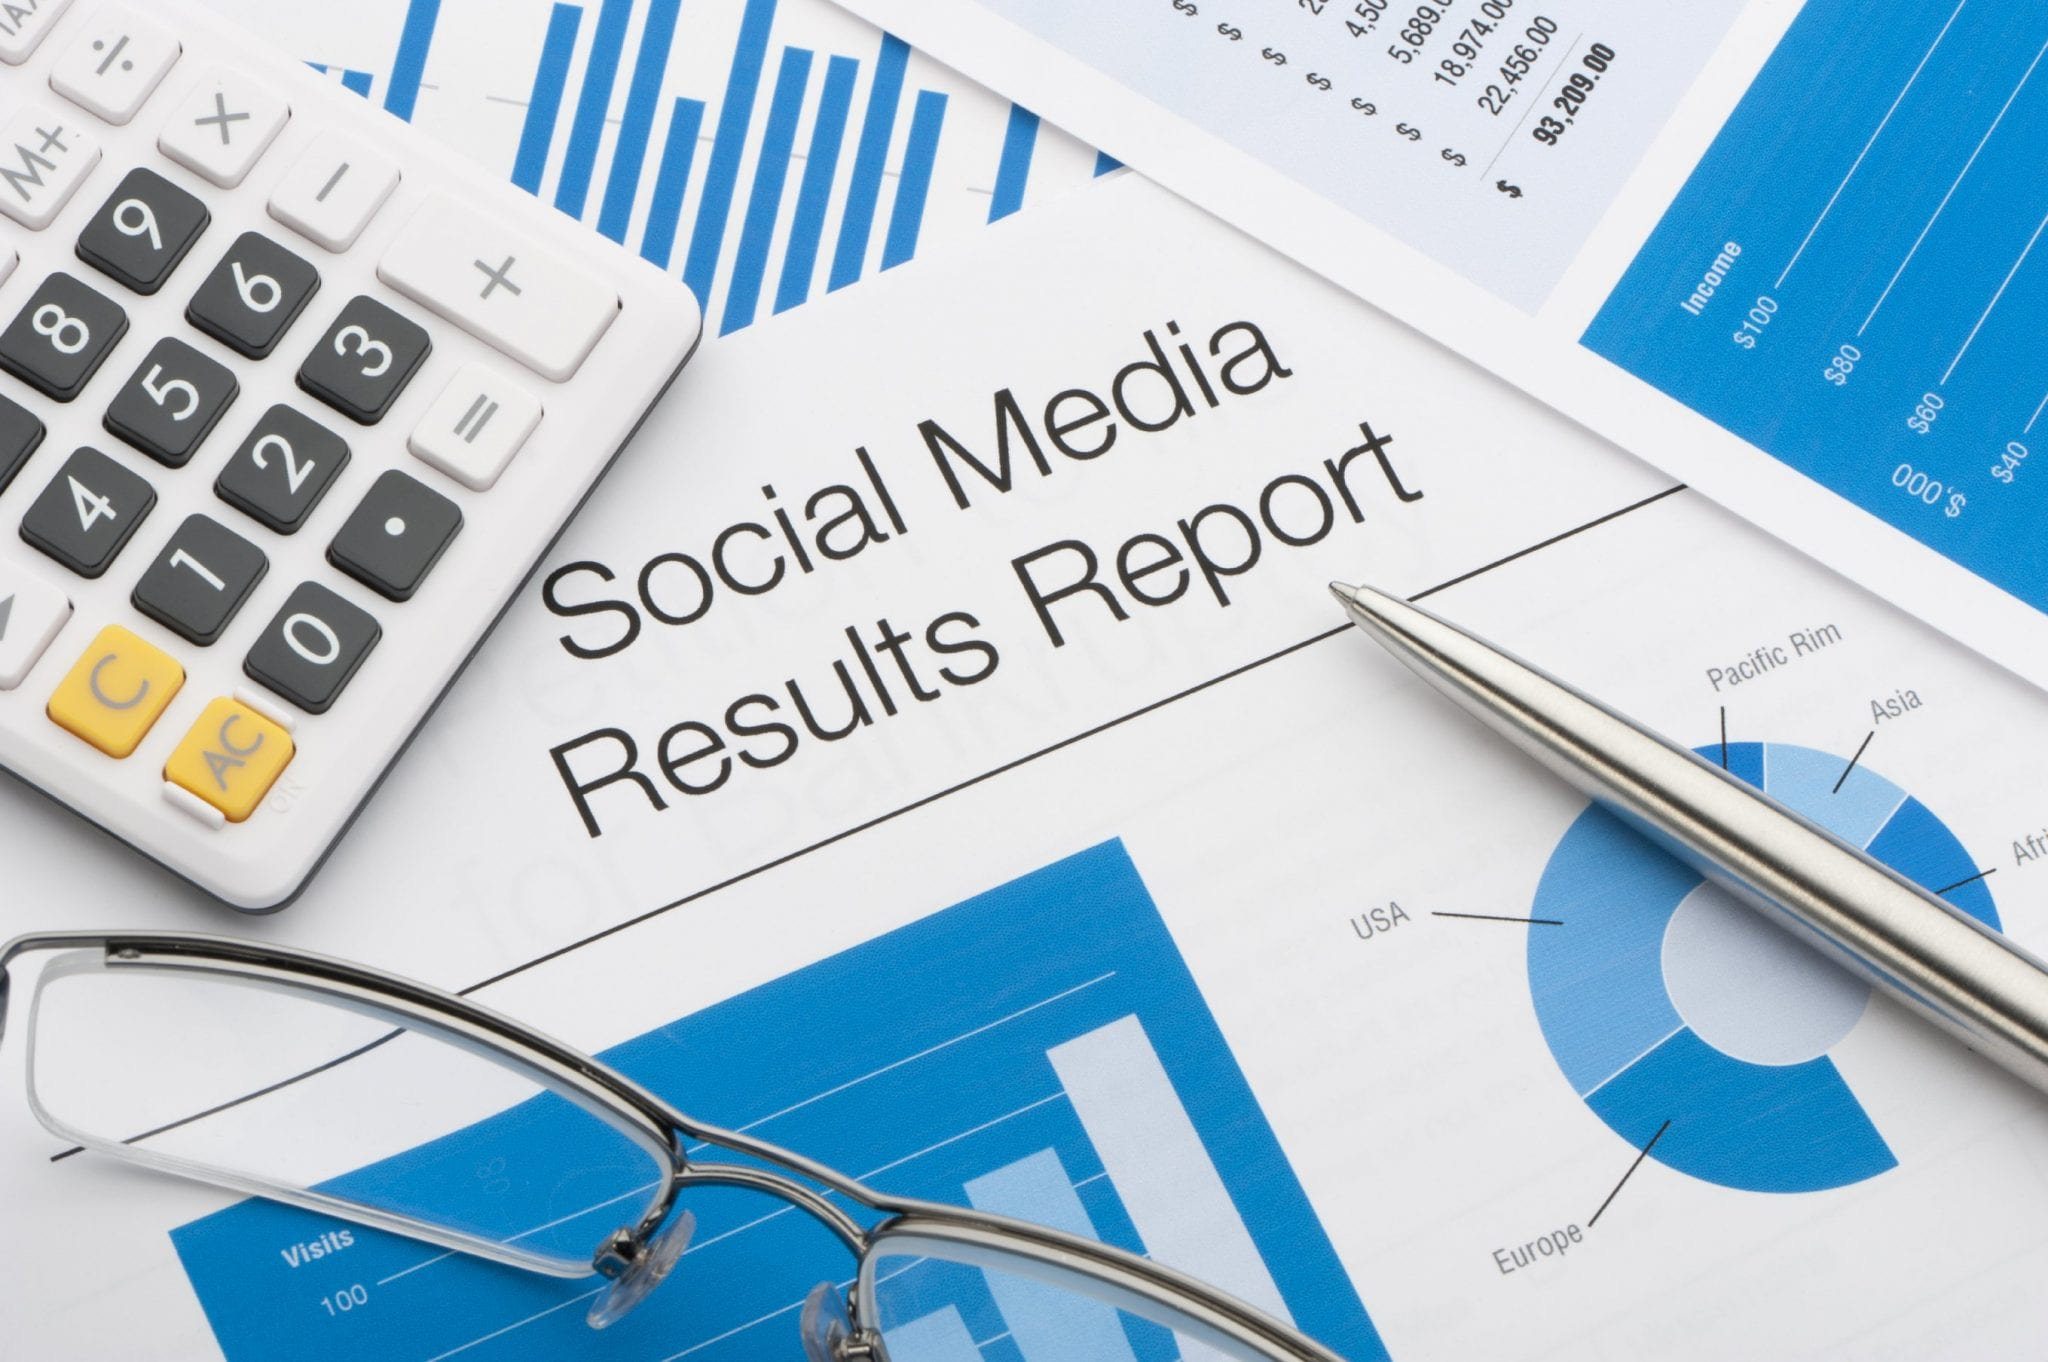 We will understand how you can improve digital marketing strategy using social media marketing analysis